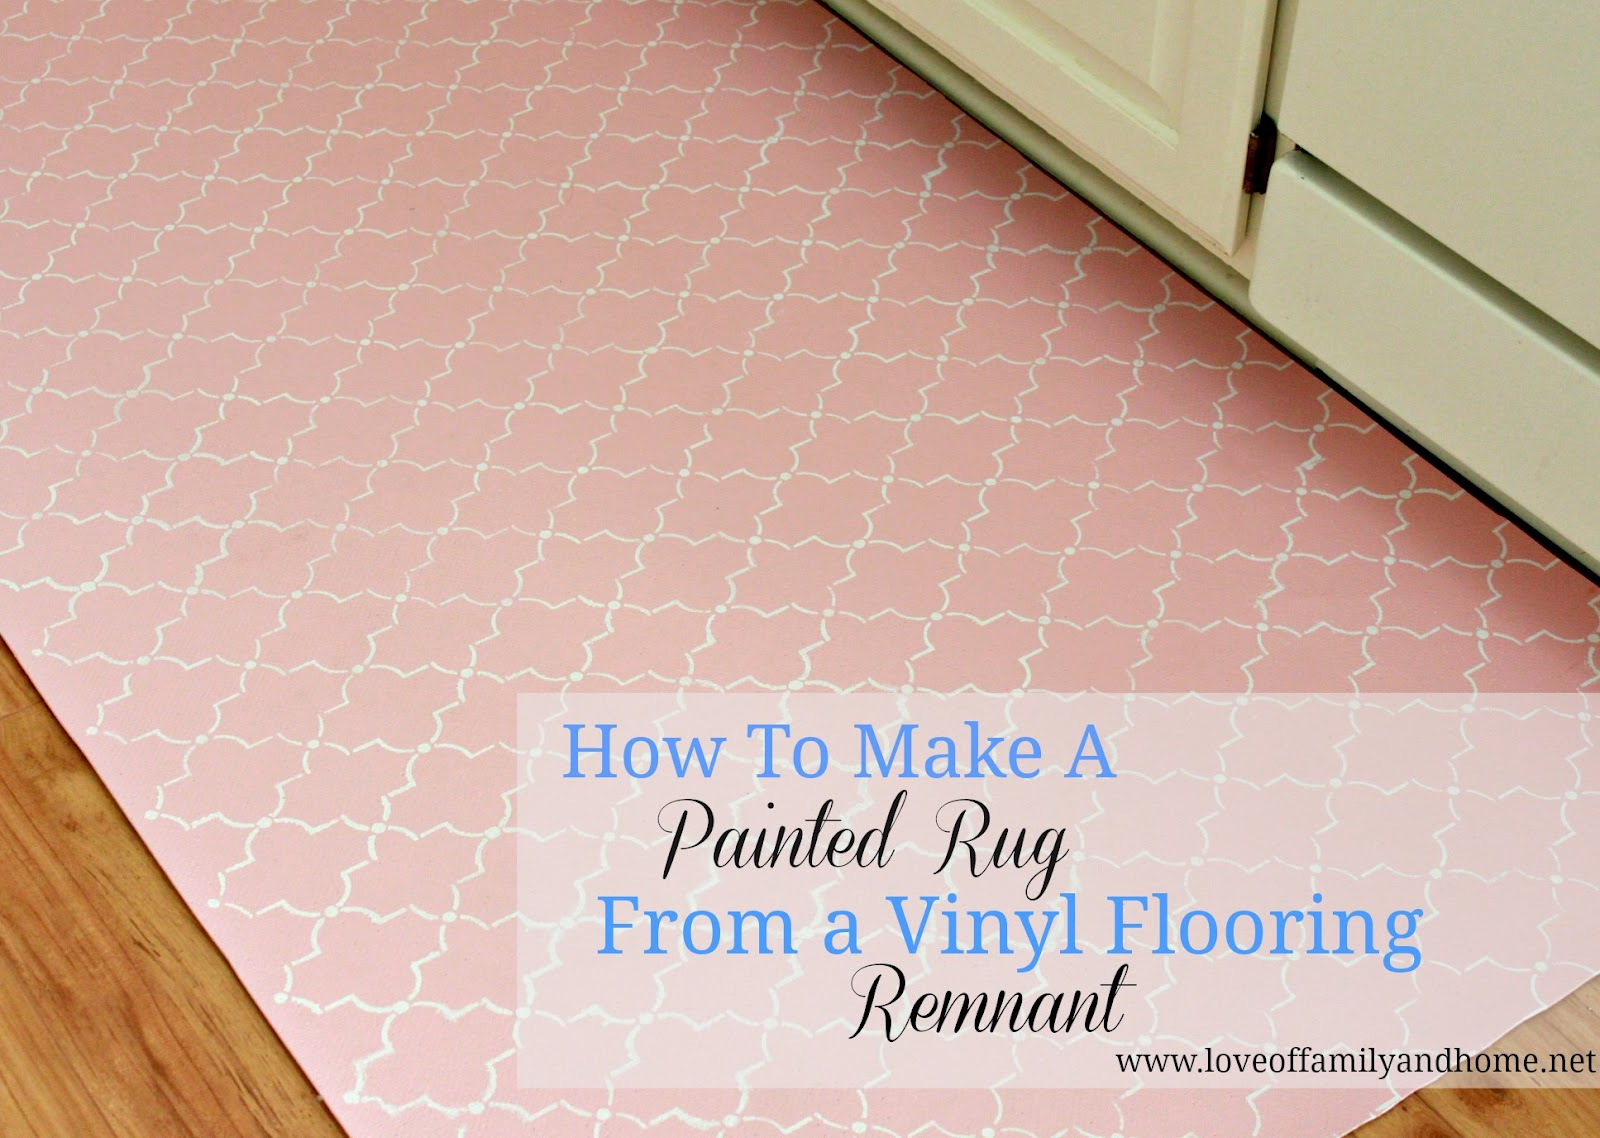 How To Paint A Rug Using Vinyl Flooring Love Of Family Home - Linoleum floors at lowe's